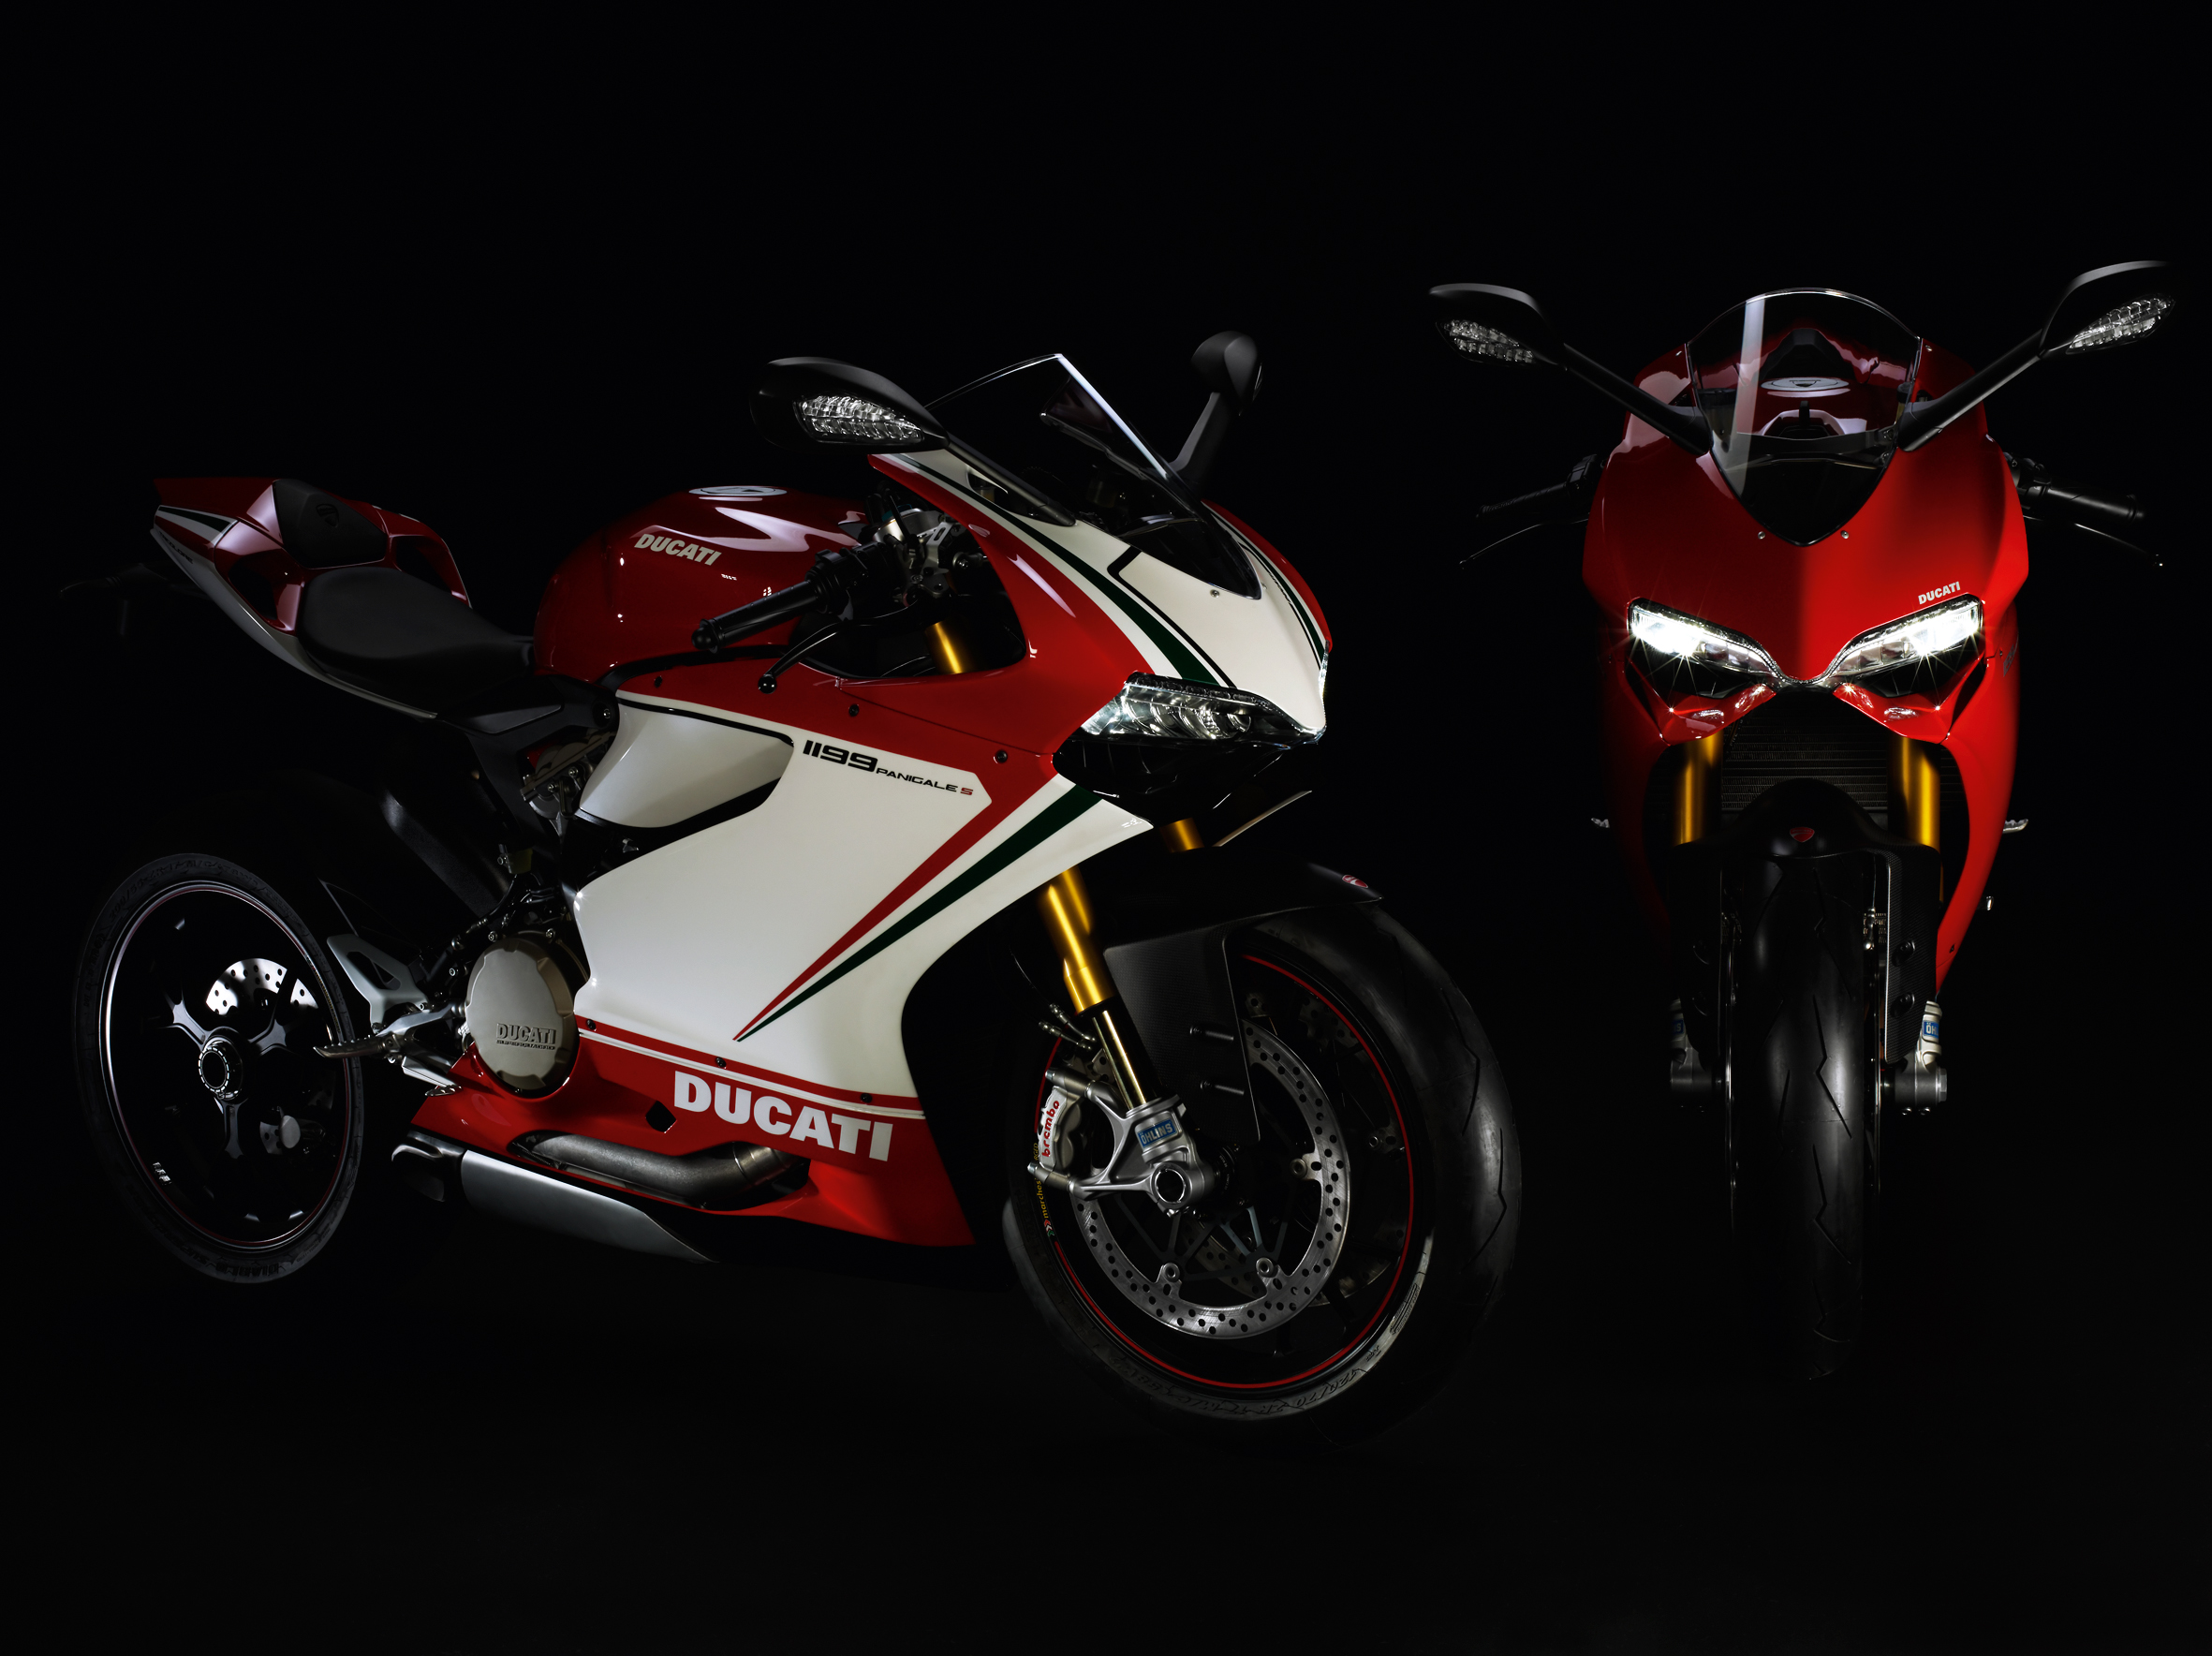 03_1199panigale